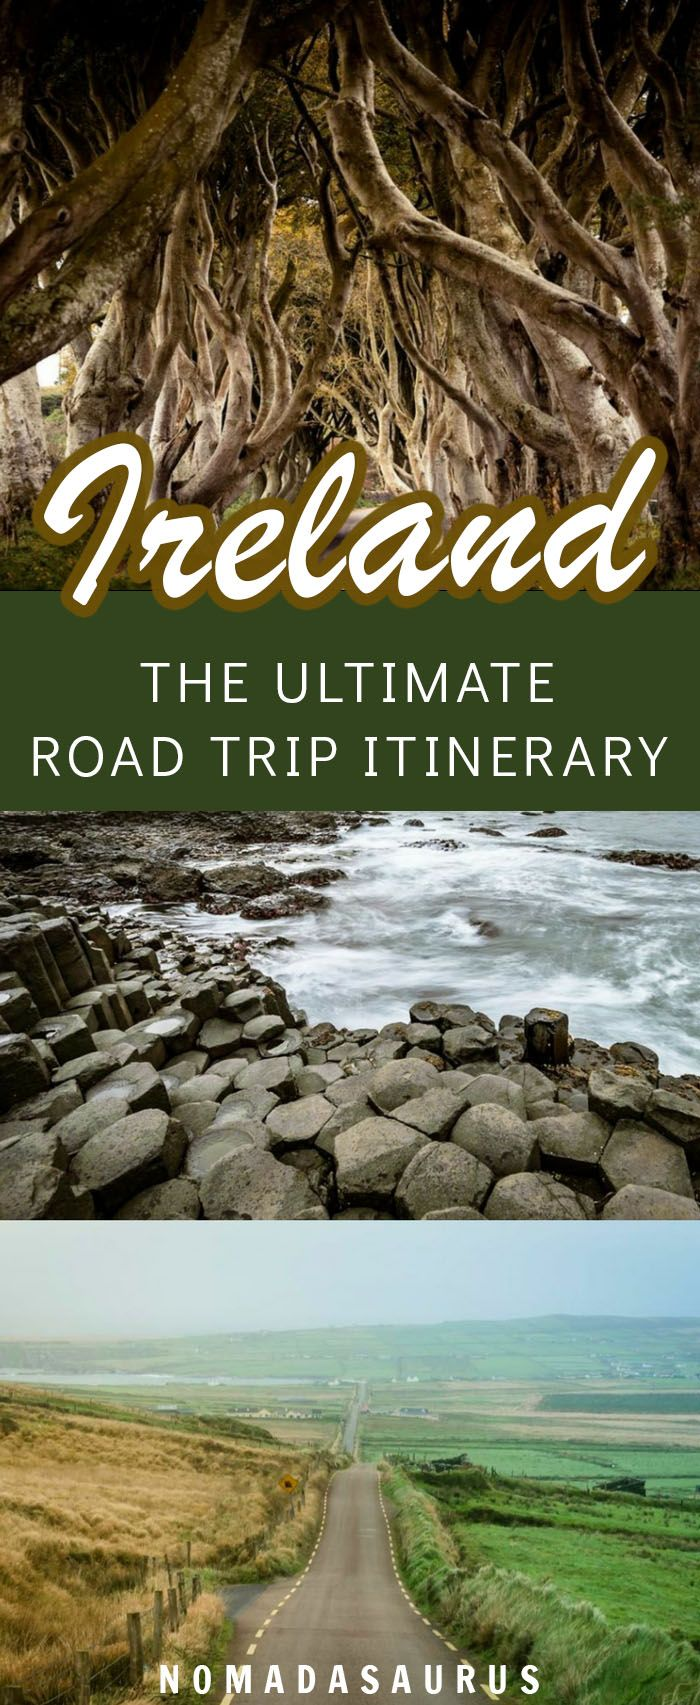 From the Wild Atlantic Way to the Ring of Kerry to the Dark Hedges and more, here's the perfect travel itinerary for Ireland. #ireland #roadtrippin